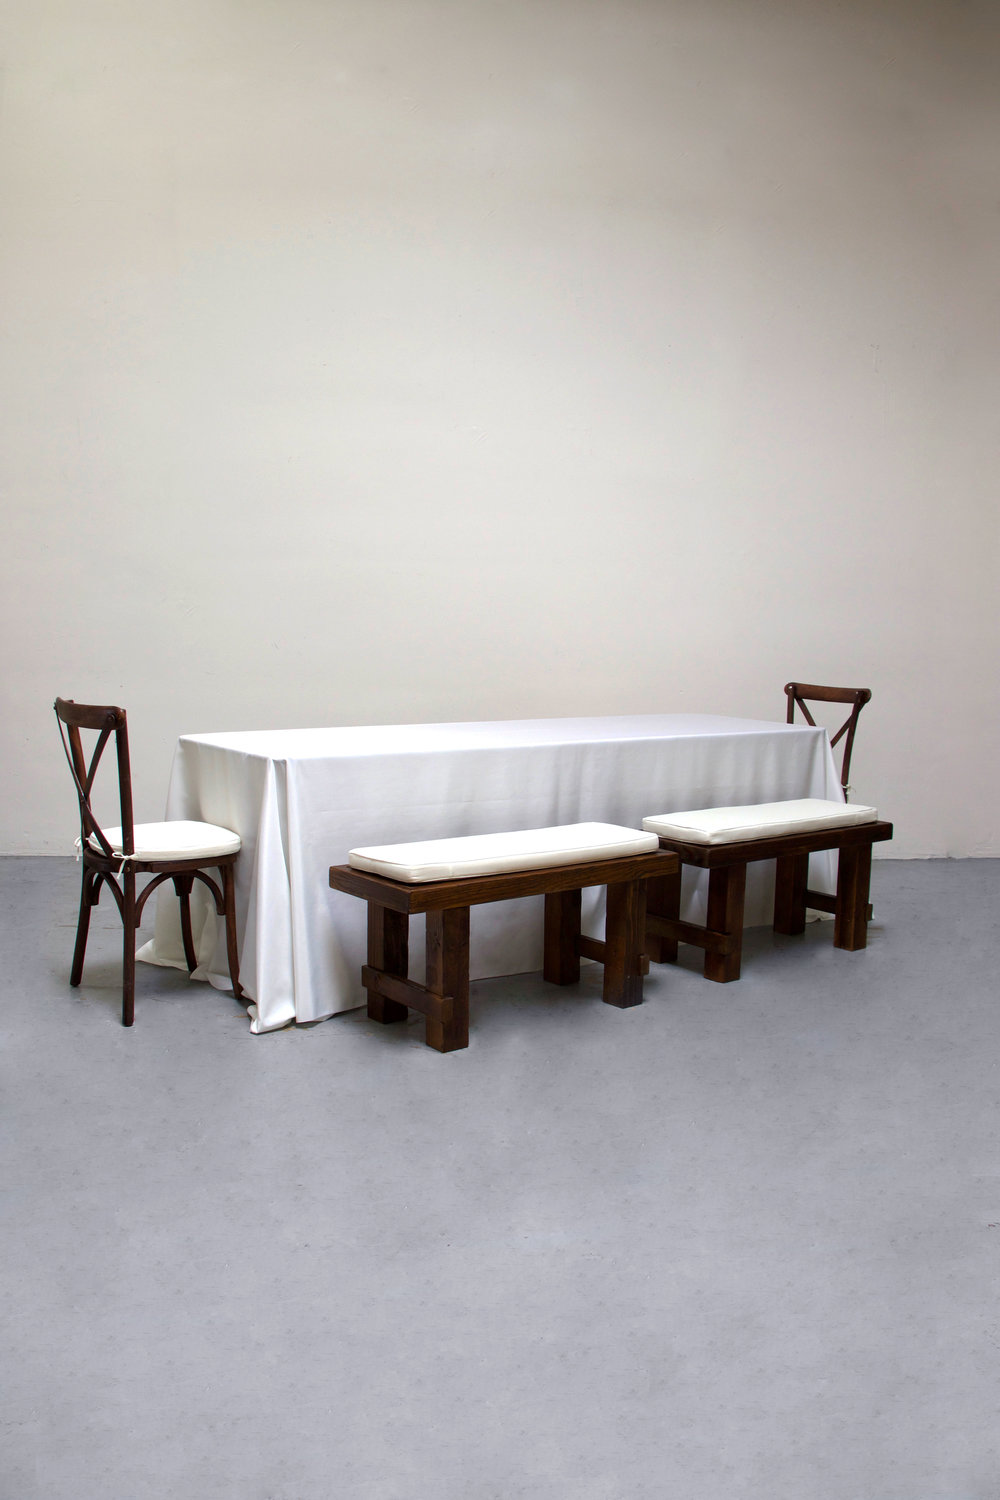 1 Banquet Table with 4 Short Benches & 2 Cross-Back Chairs $100